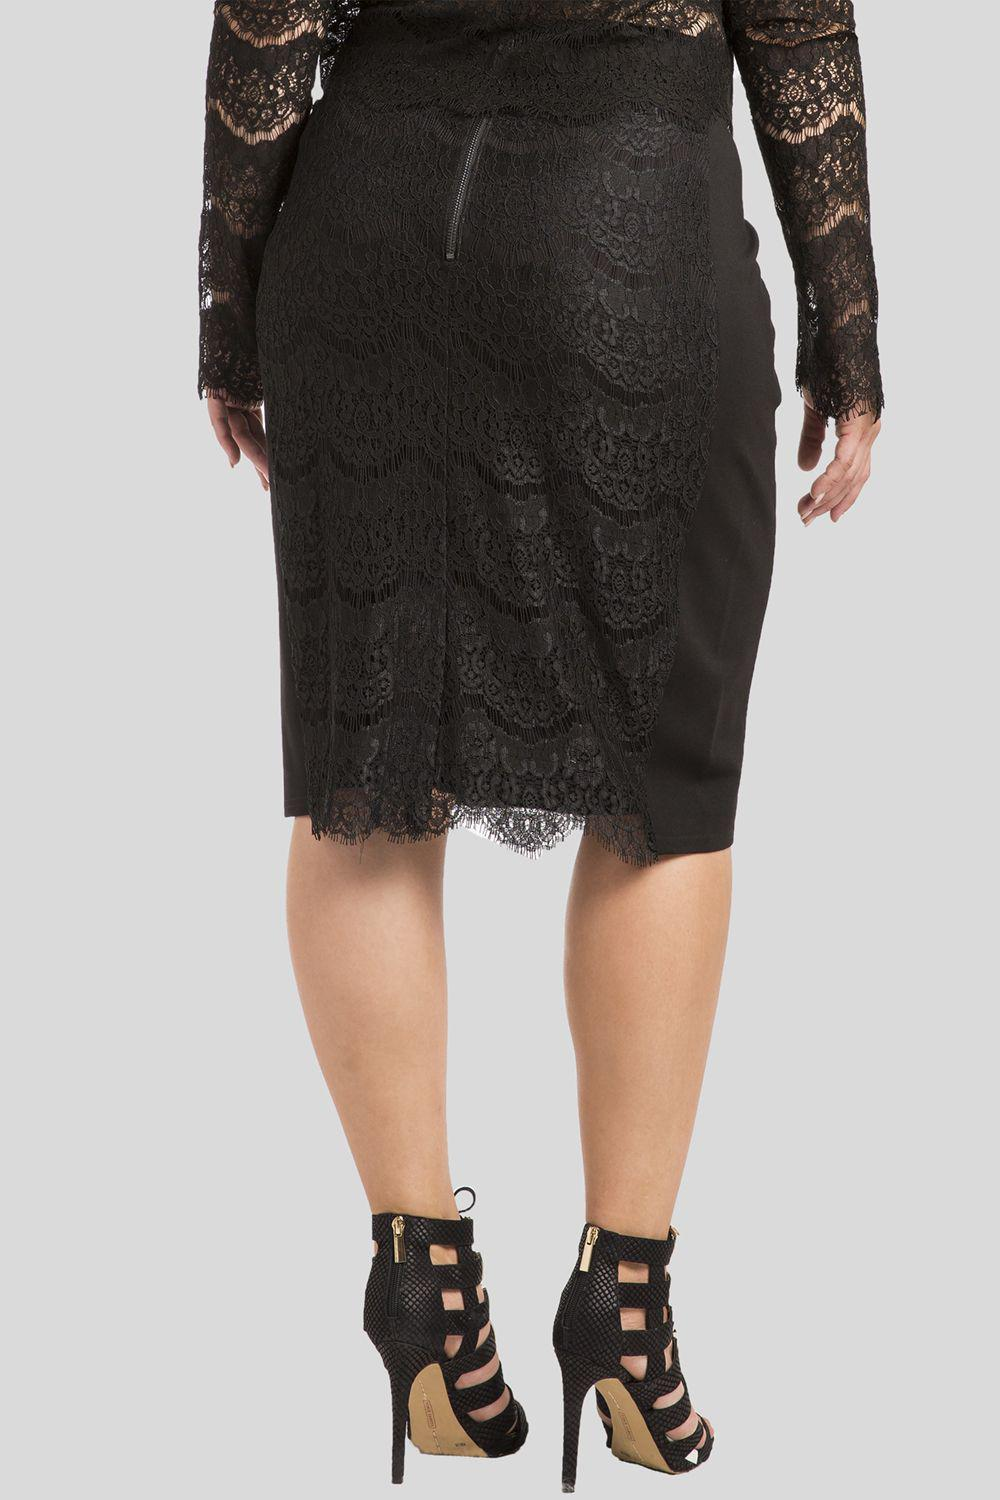 Plus Size Tori Black Pencil Skirt in Ponte and Lace